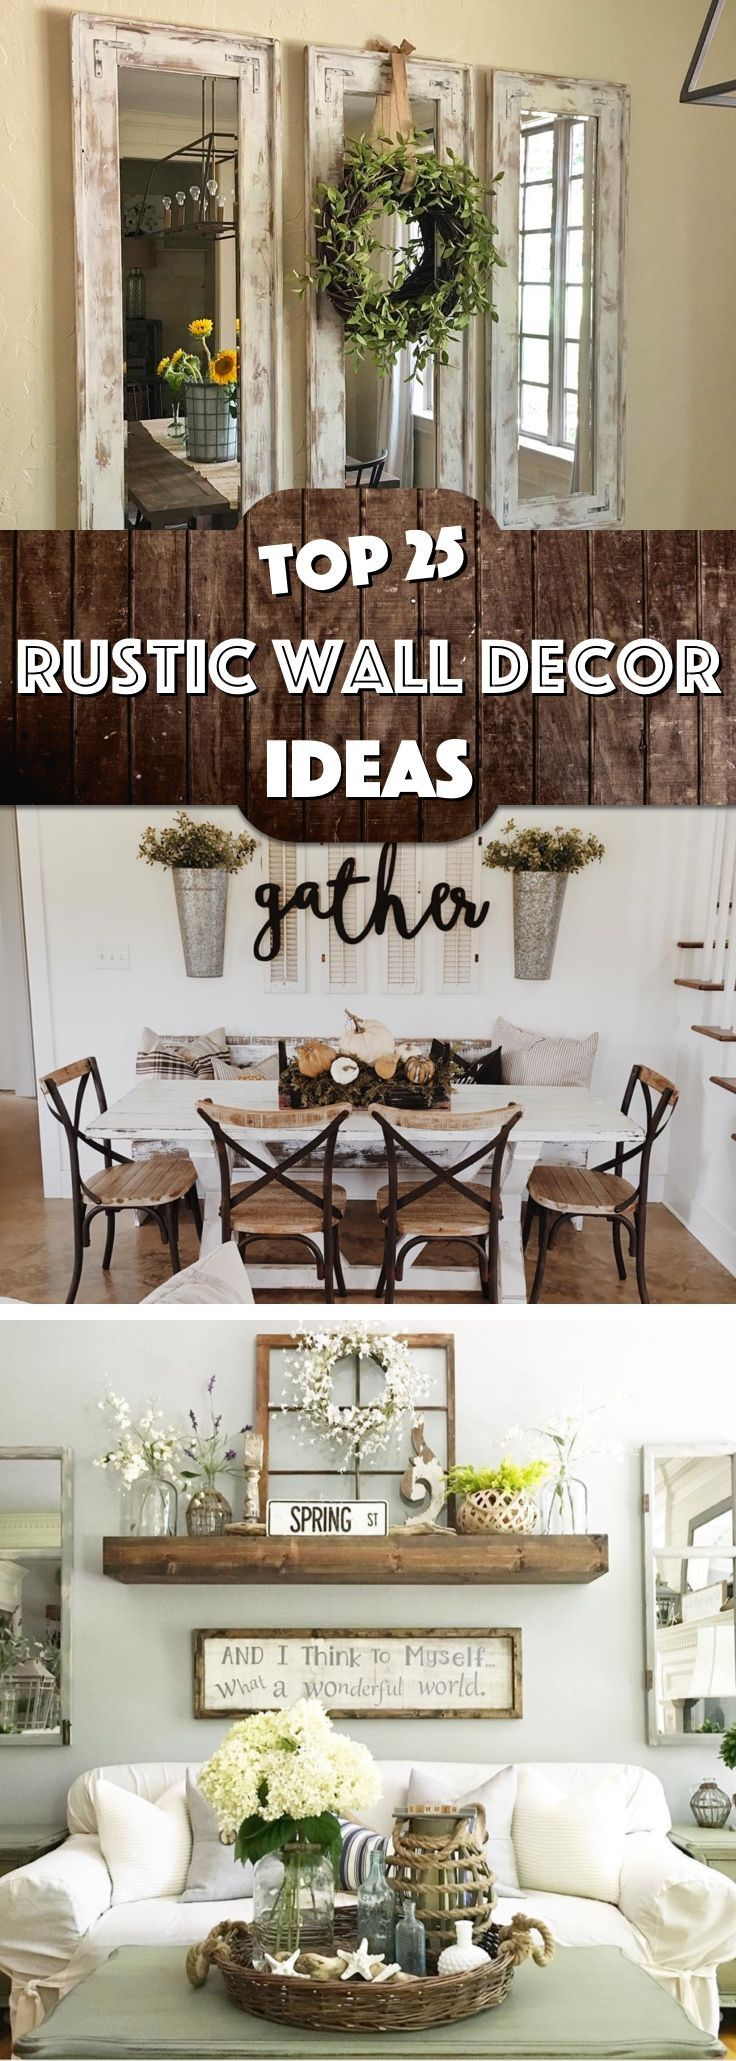 Best 25+ Country wall decor ideas on Pinterest | Rustic ...